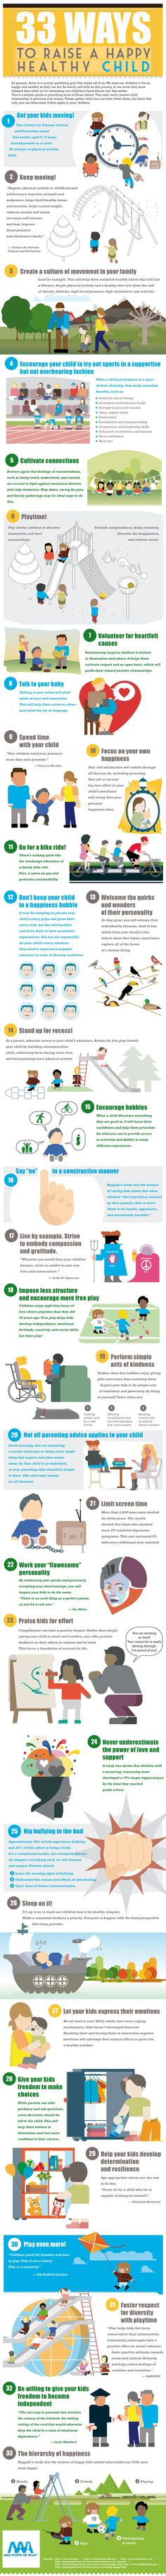 33 Ways to Raise a Happy Health Child - AAAStateofPlay.com - Infographic